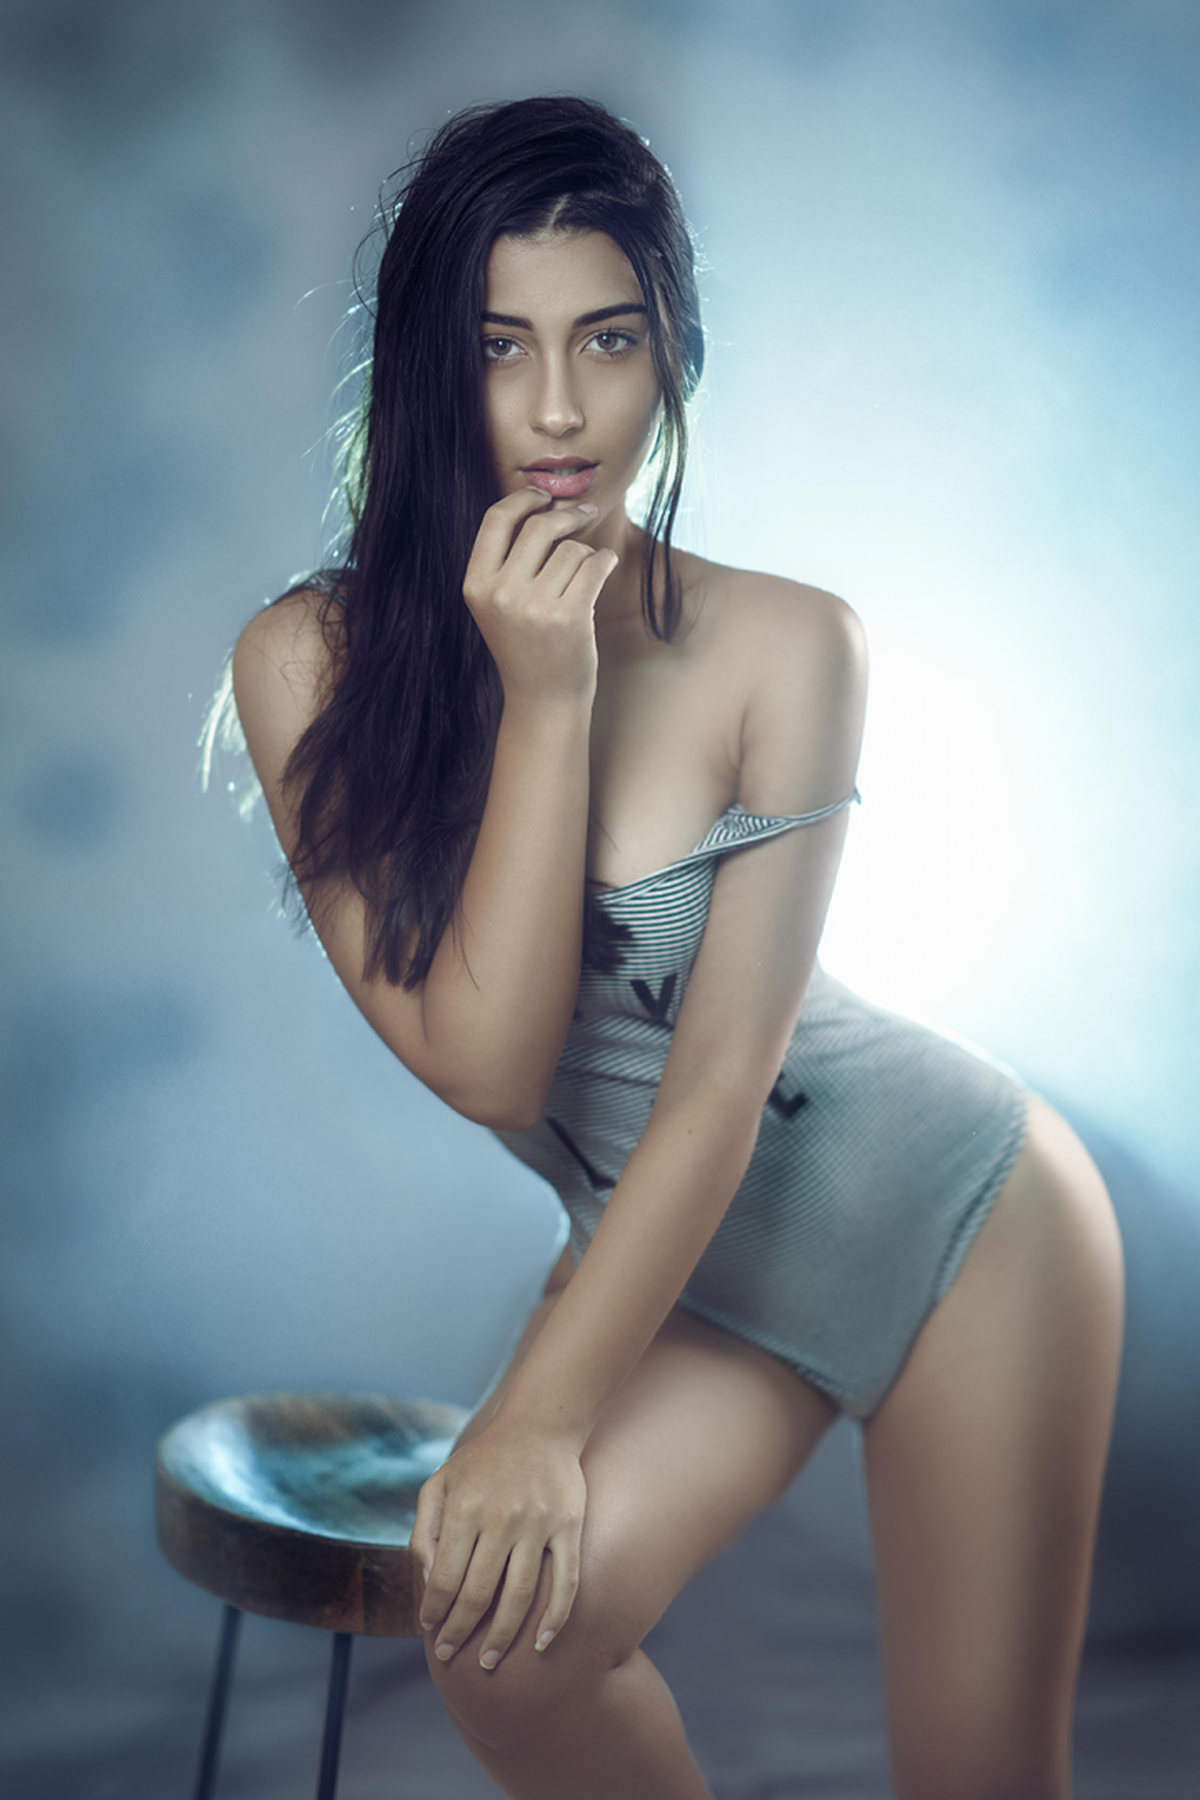 Image of Model, Clothing, Beauty, Skin, Human leg, Lip etc.